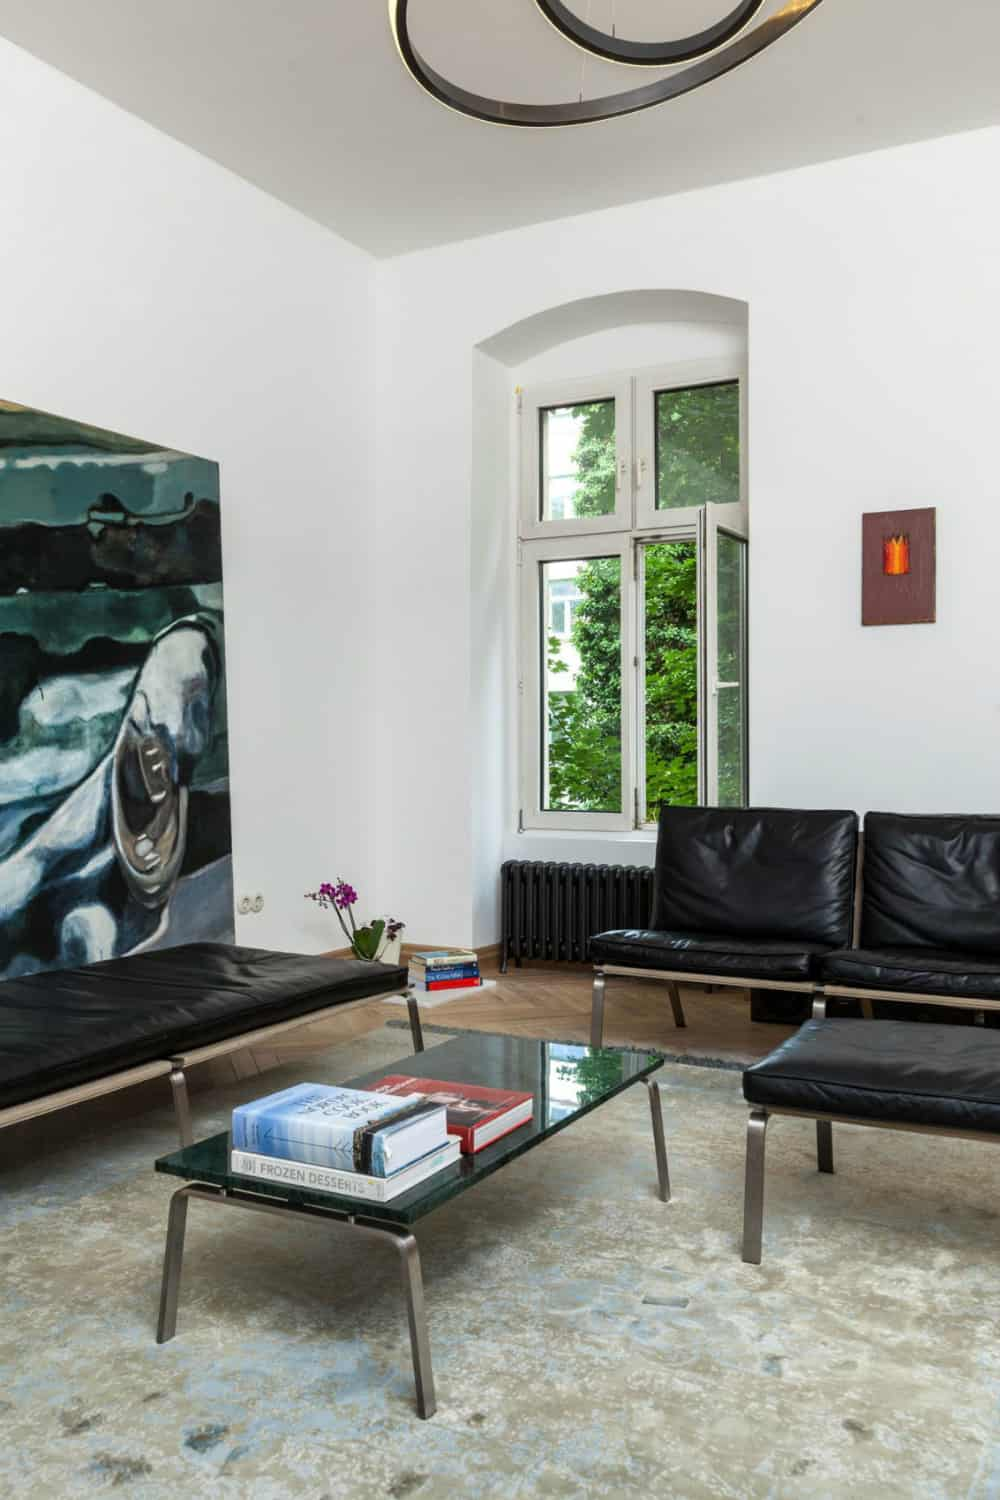 The contrast between furnishings and walls spreads to central heating